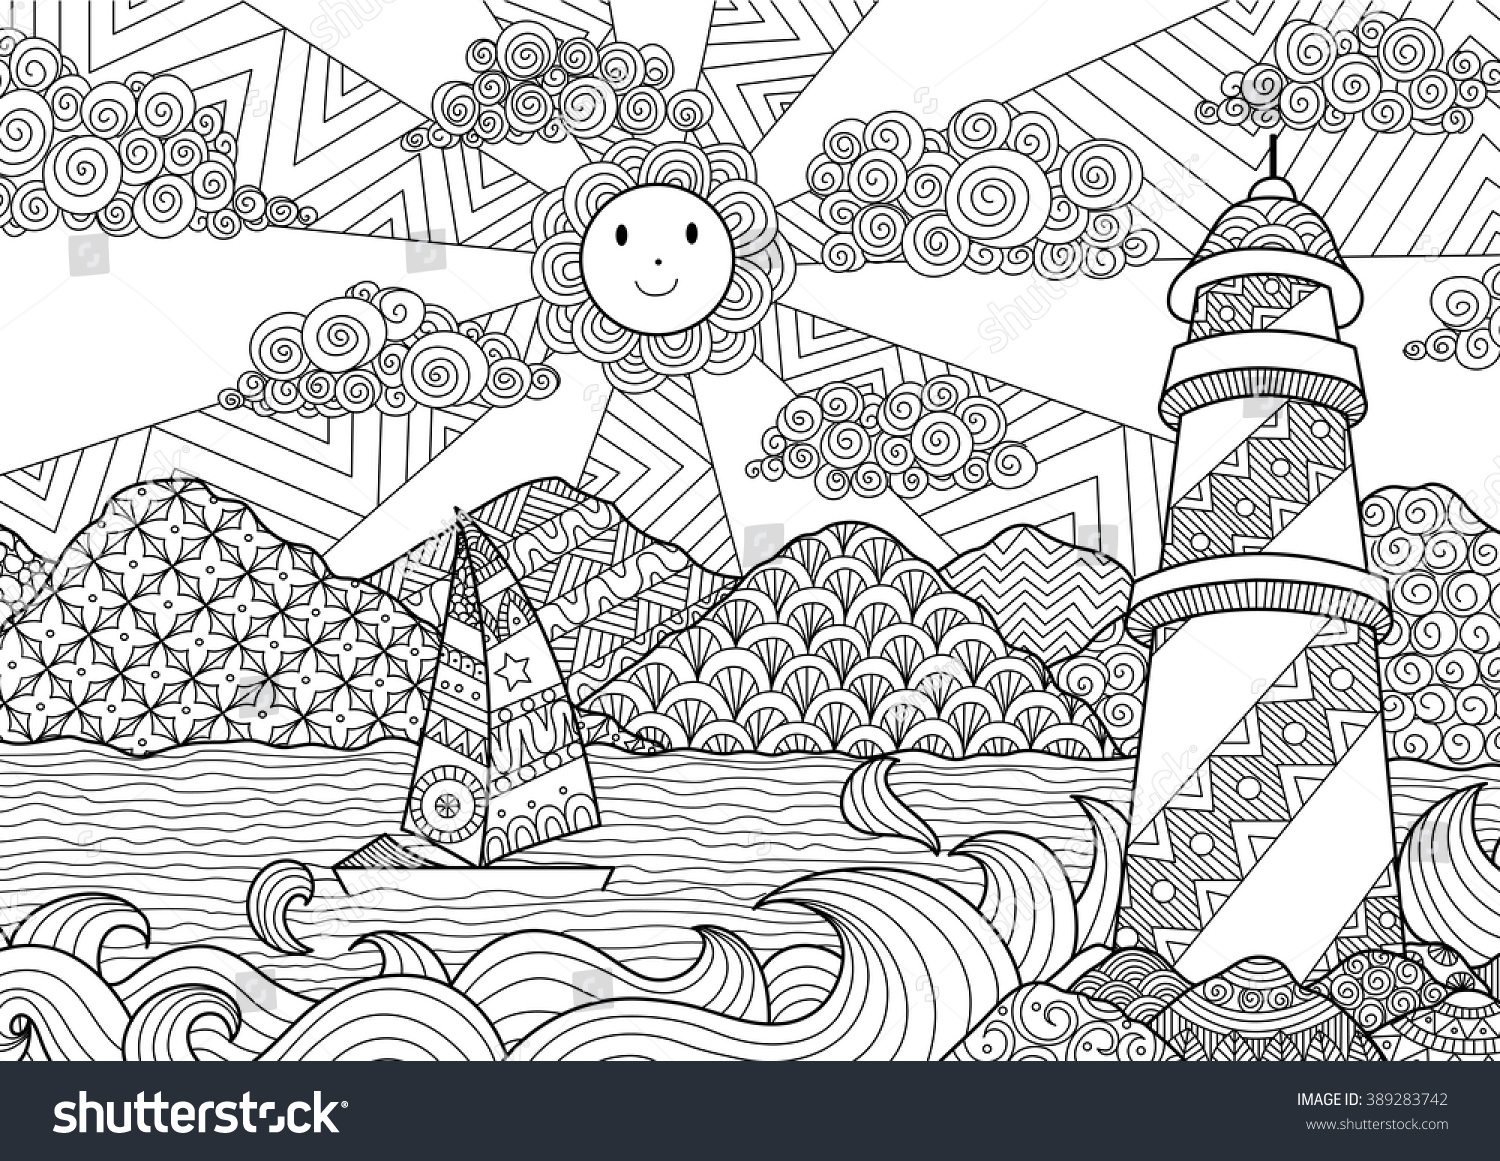 Line In Art And Design : Seascape line art design coloring book stock vector